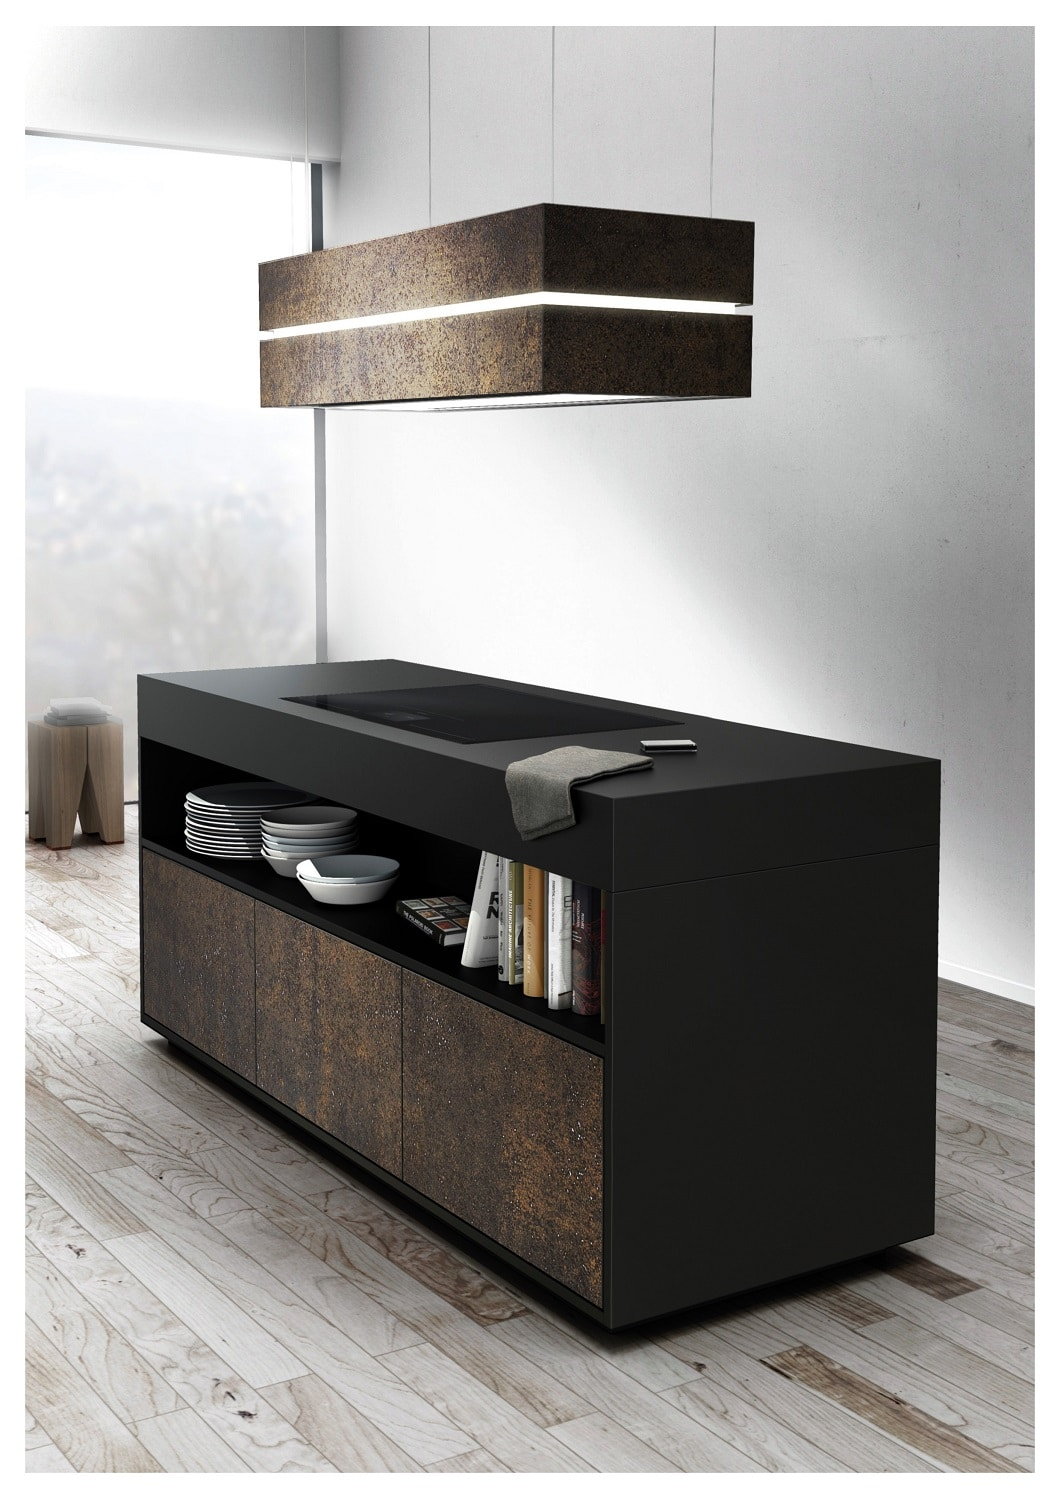 skyline edge von berbel dunstabzug mit sound und stil. Black Bedroom Furniture Sets. Home Design Ideas